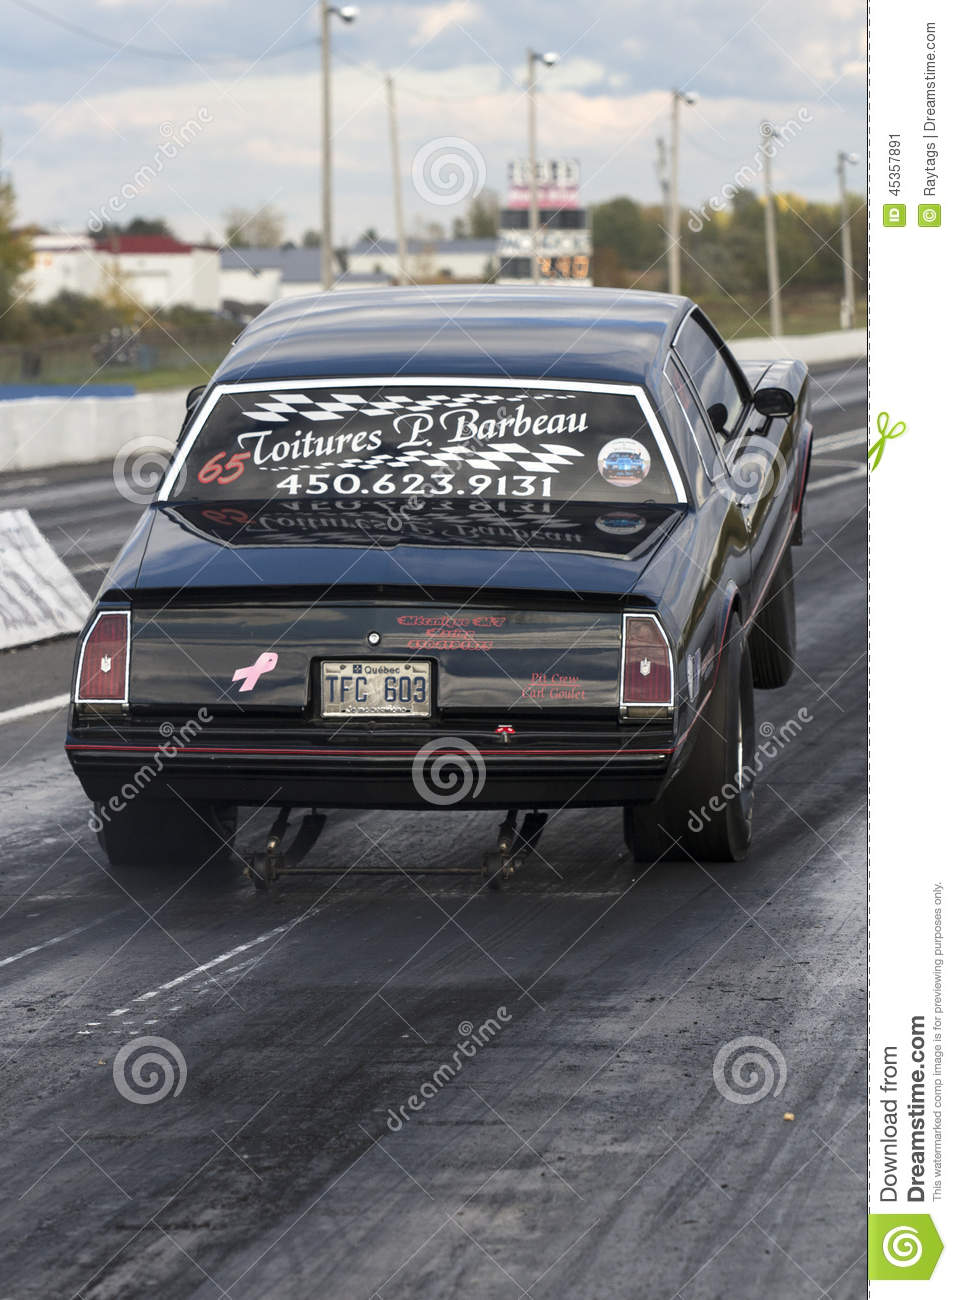 Napierville September 13, 2014 Rear View Of Chevrolet Monte Carlo Making A  Wheelie On The Track During Drag Event.